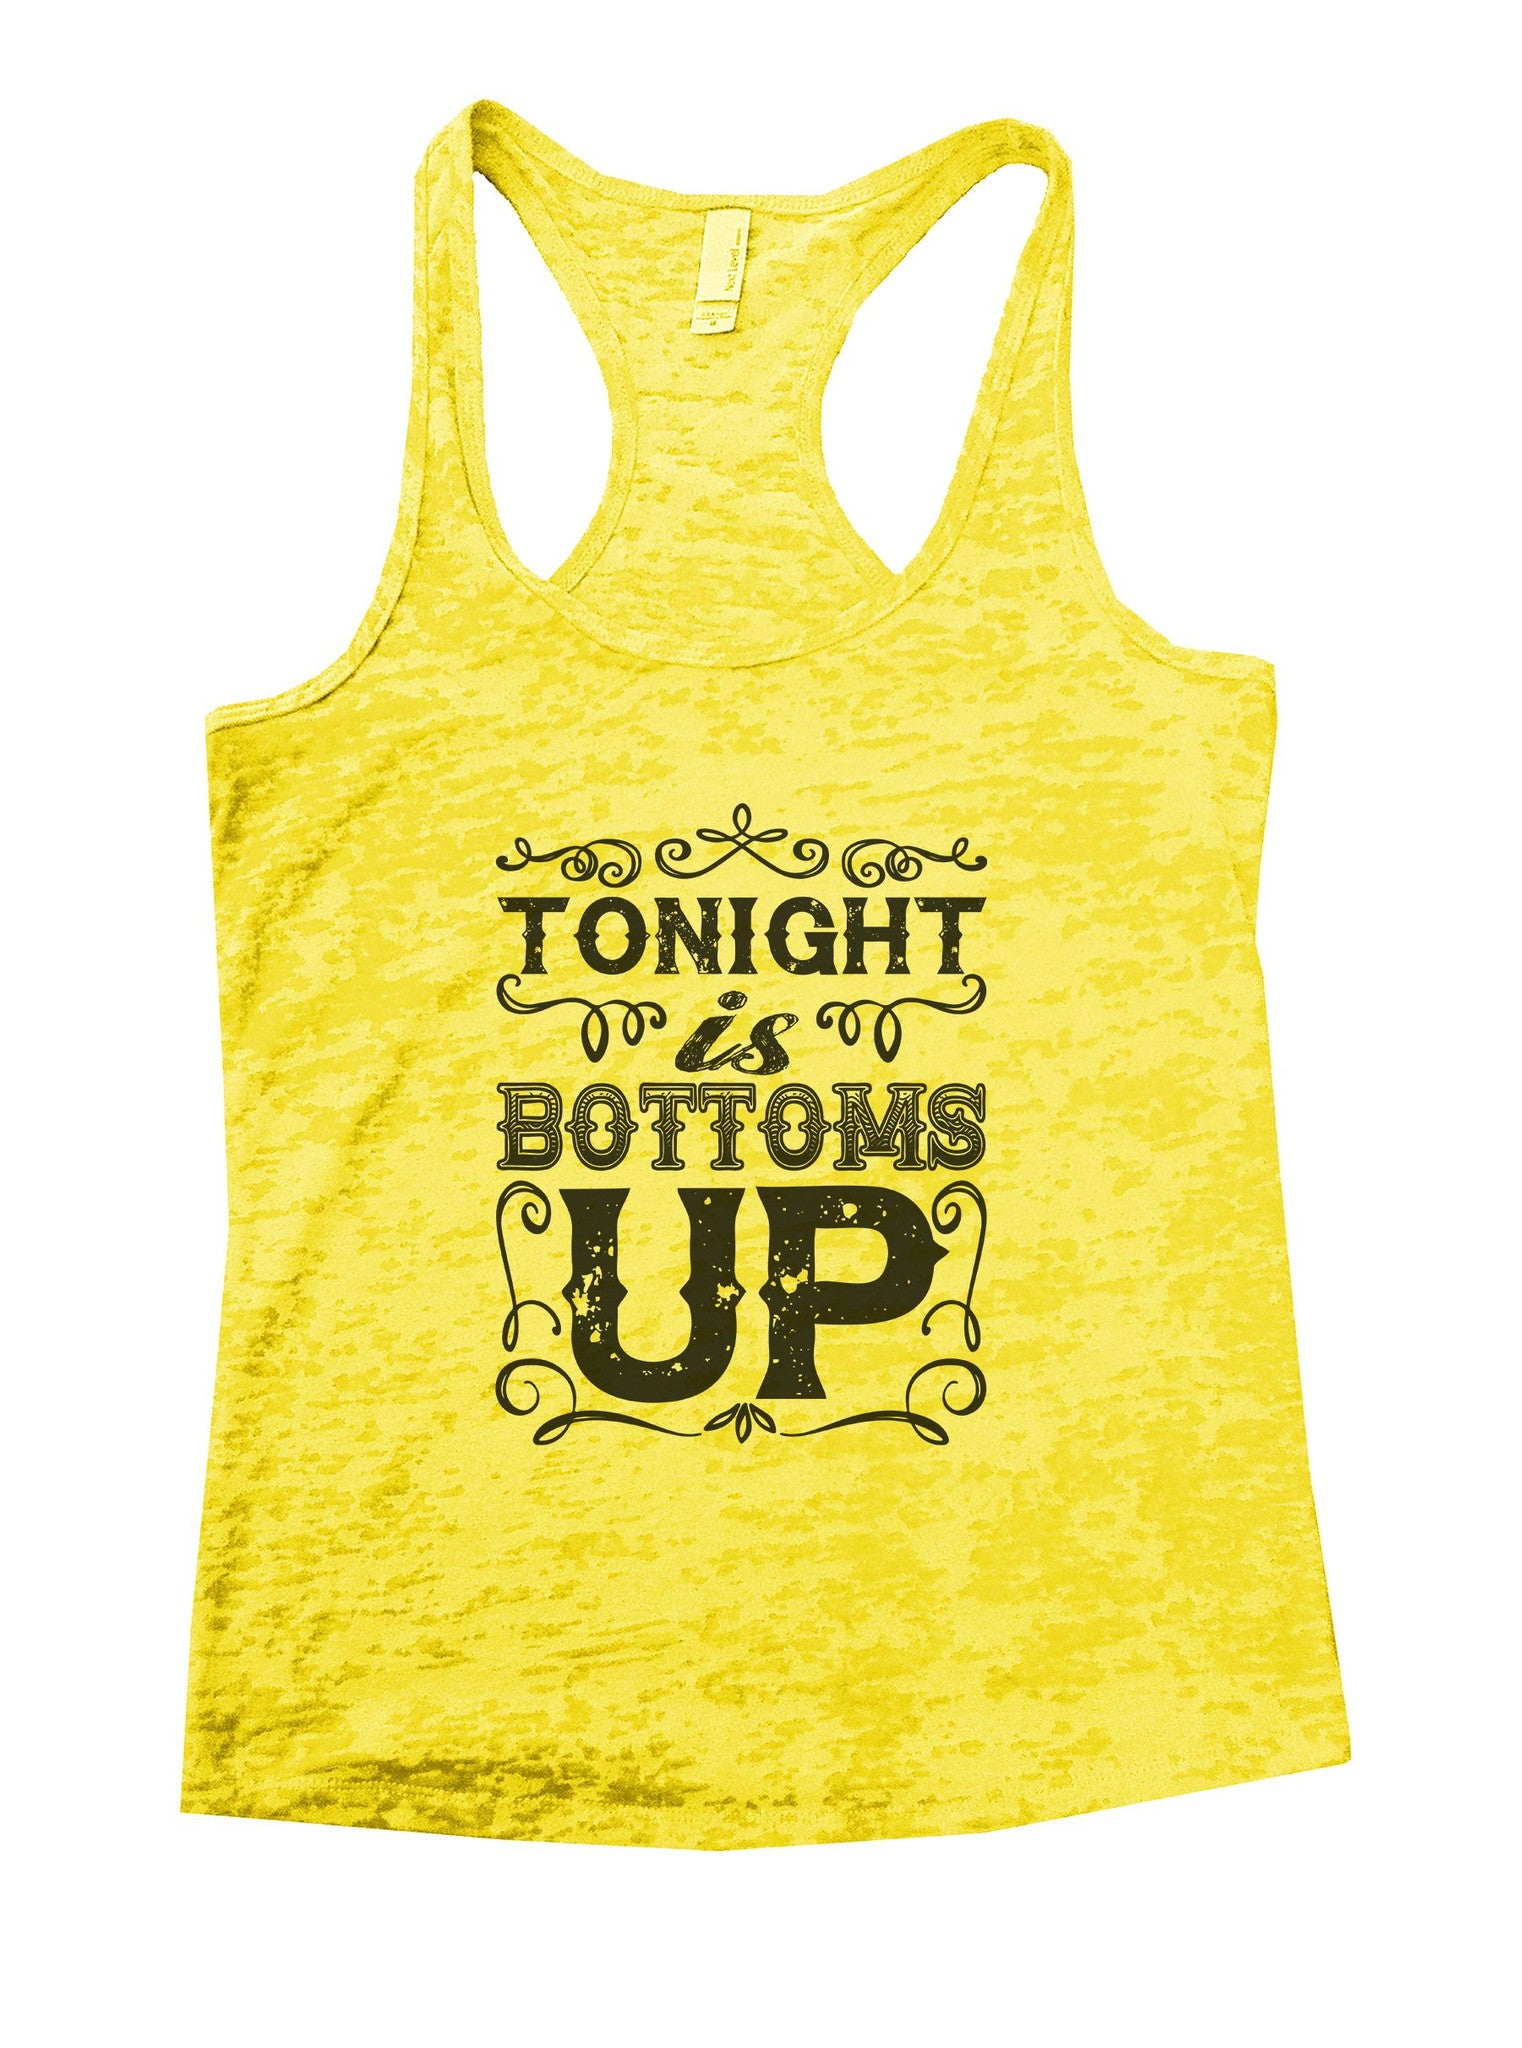 Tonight Is Bottoms Up Burnout Tank Top By BurnoutTankTops.com - 936 - Funny Shirts Tank Tops Burnouts and Triblends  - 6